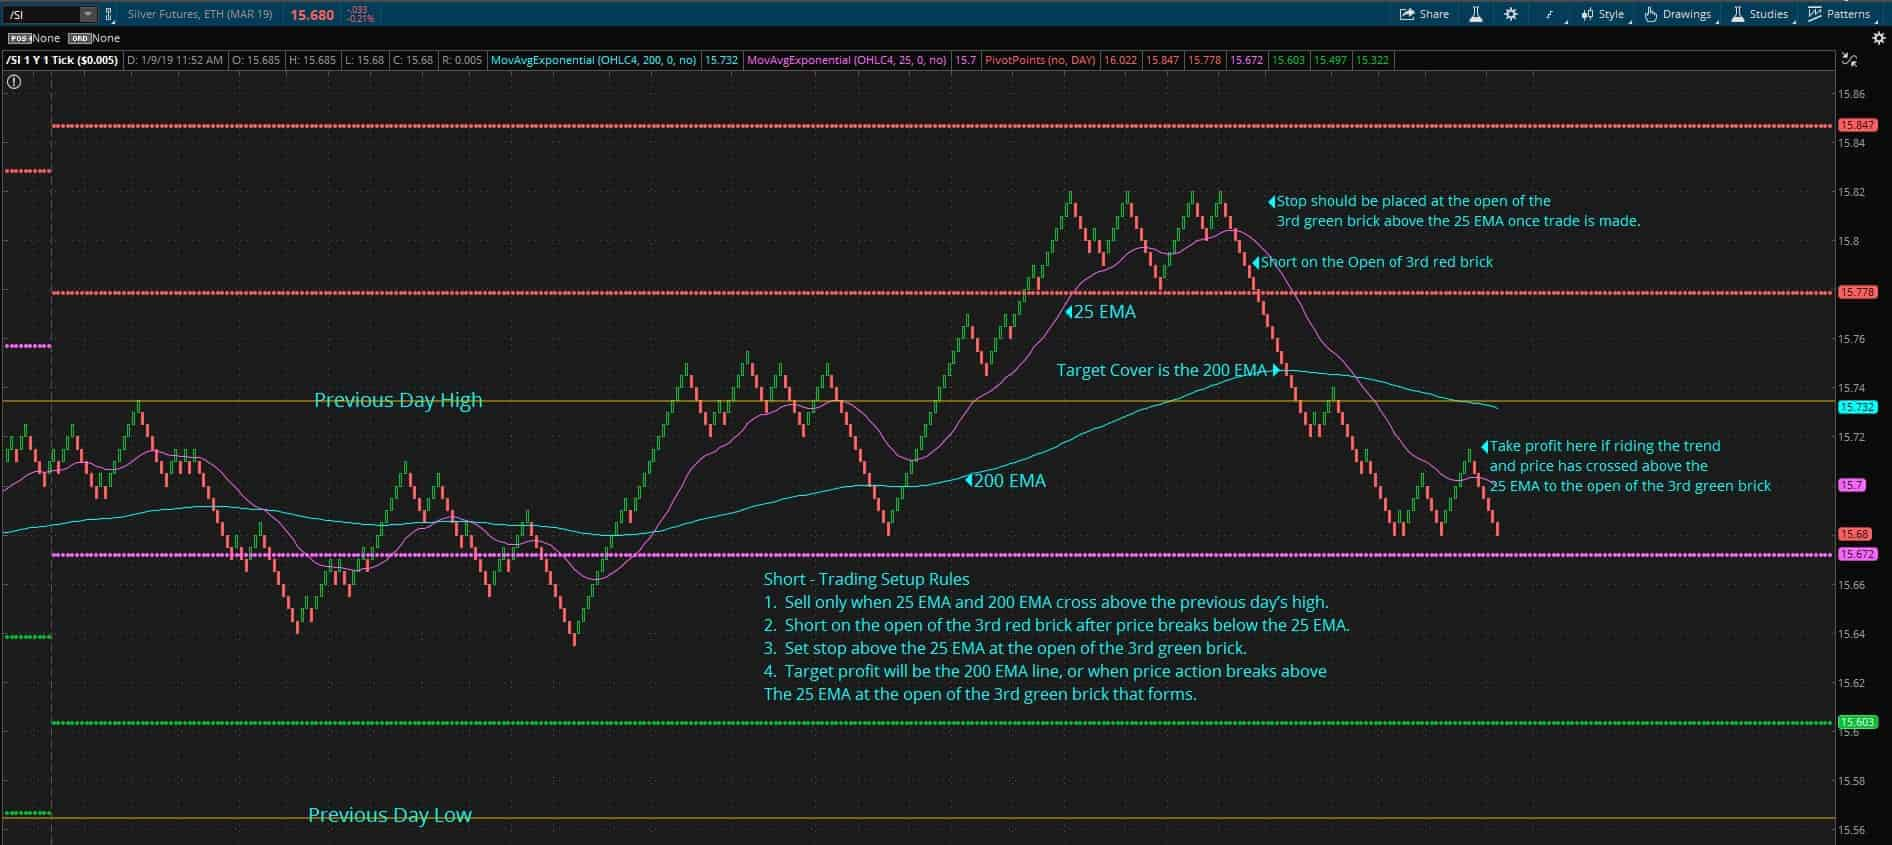 Day Trading - Short Trade Setup Strategy for Silver